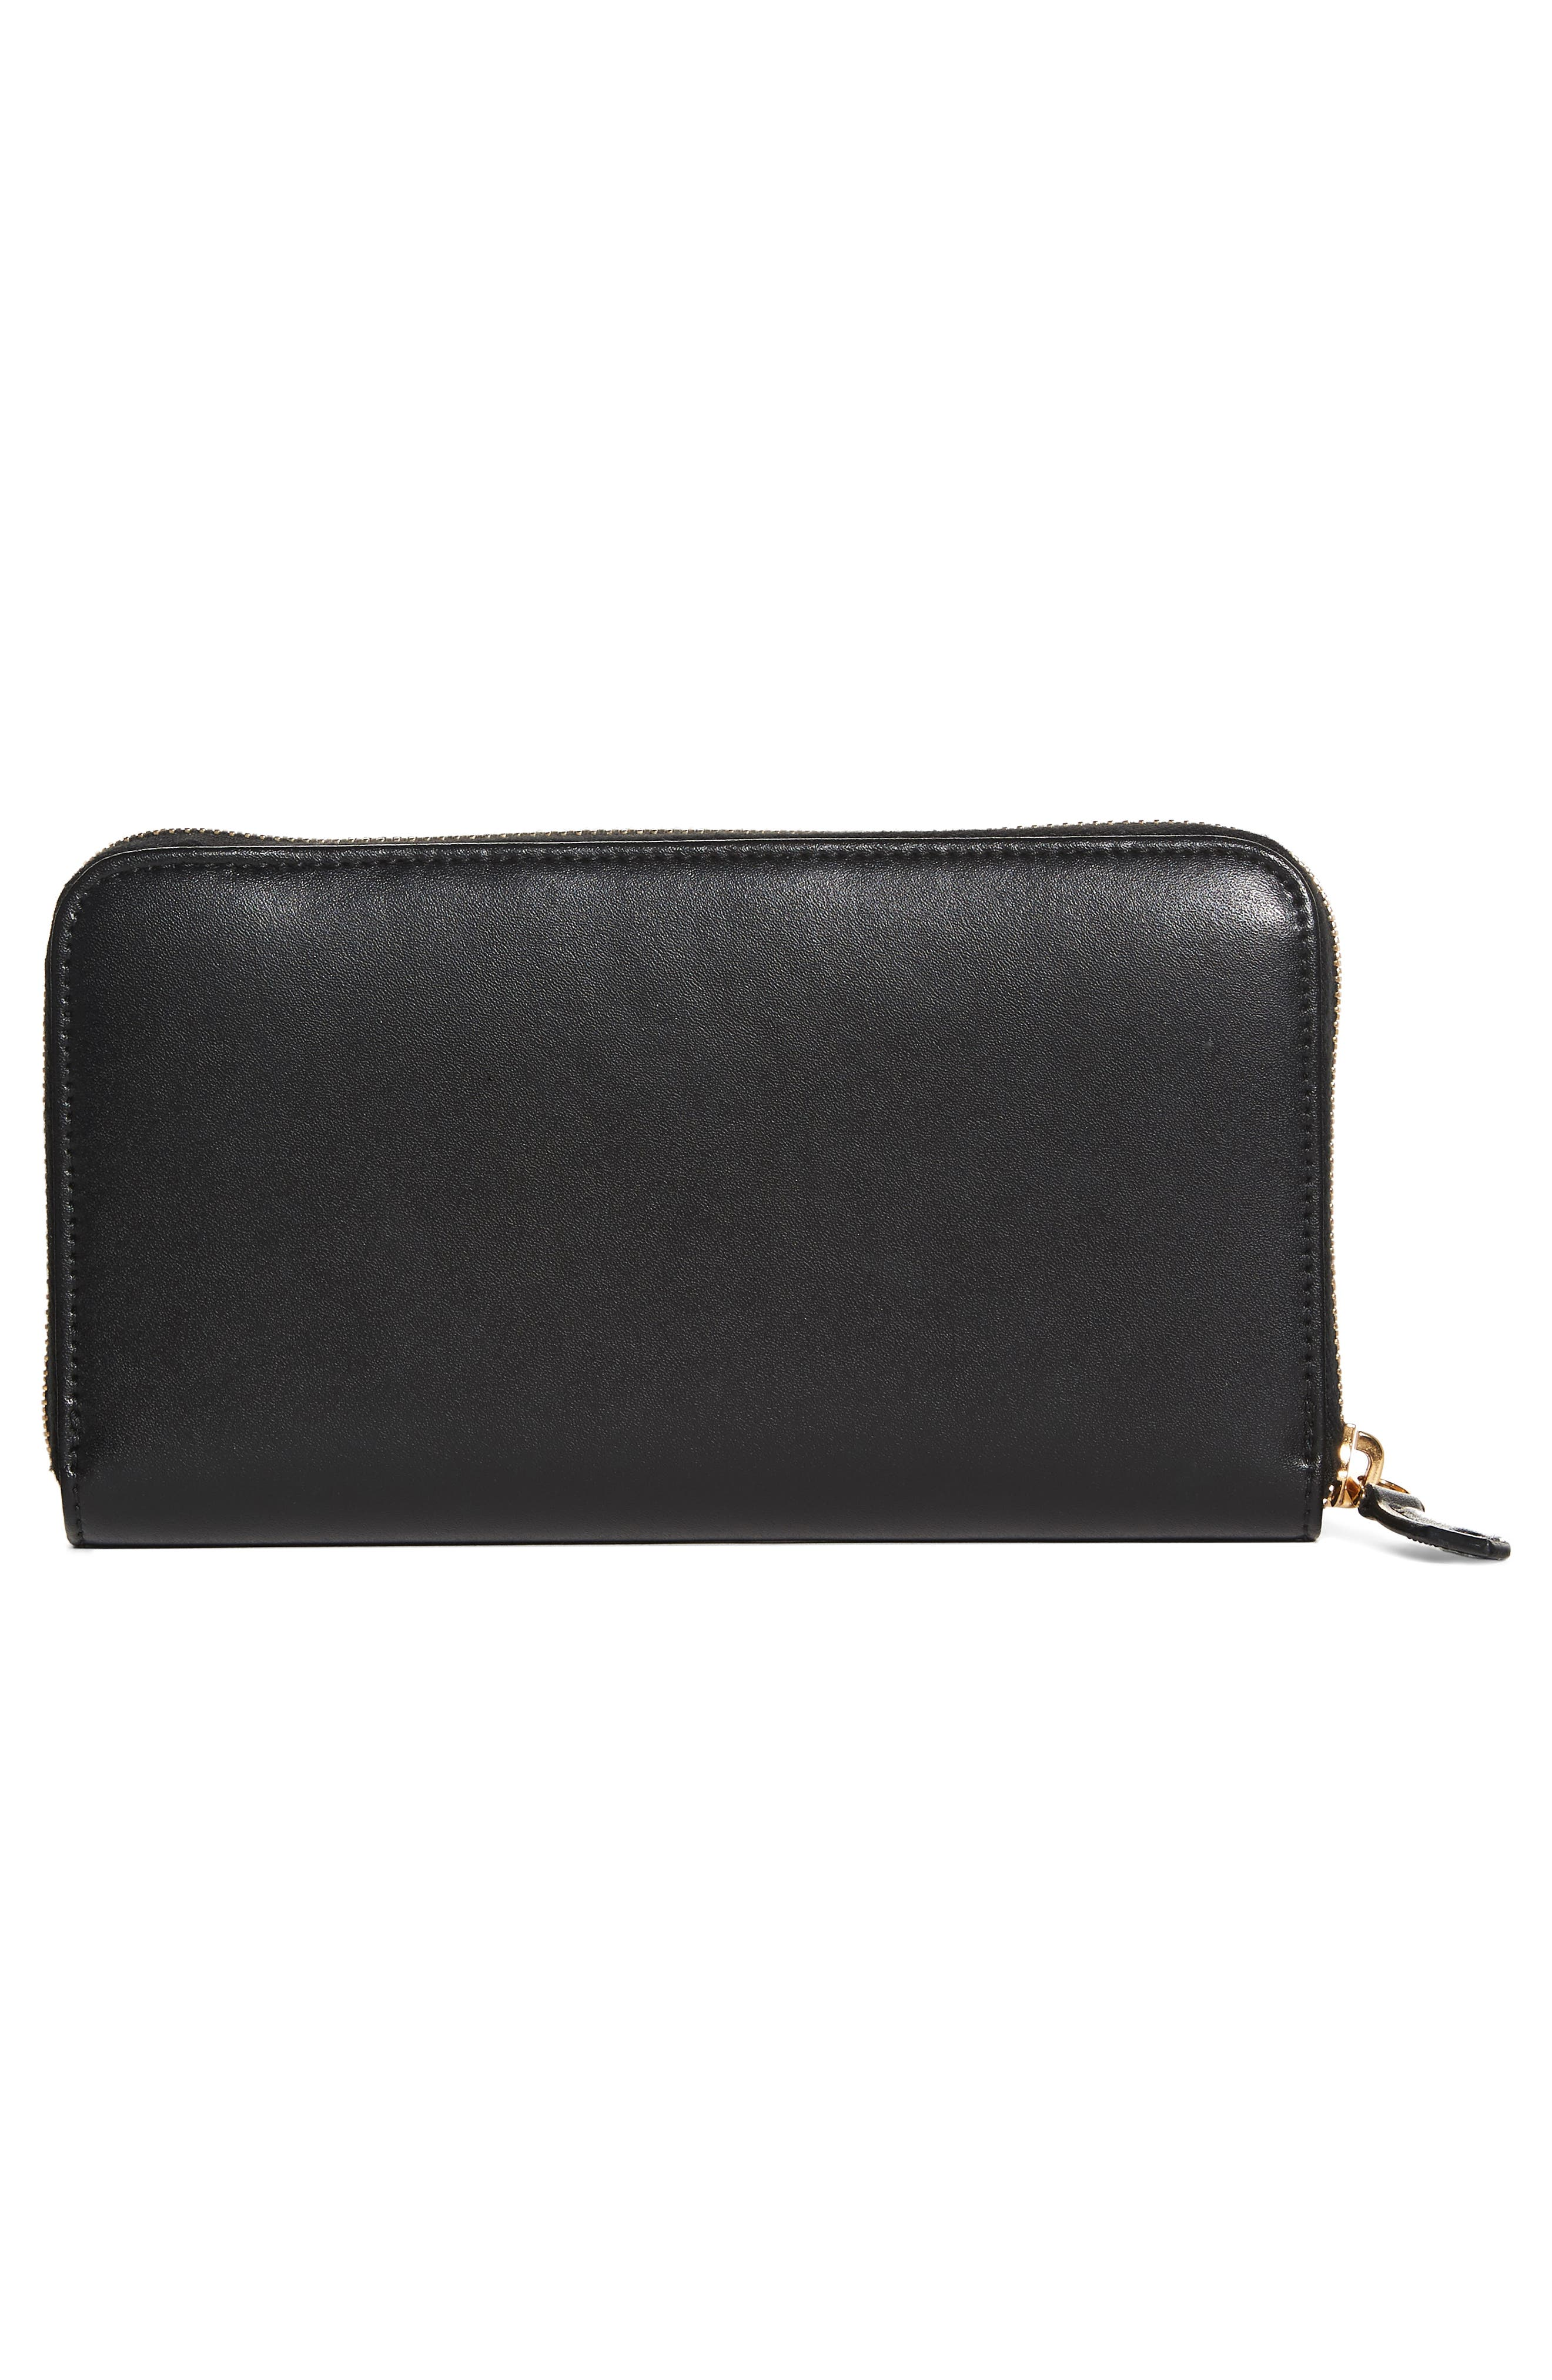 Liberty Leather Zip Around Wallet,                             Alternate thumbnail 4, color,                             006